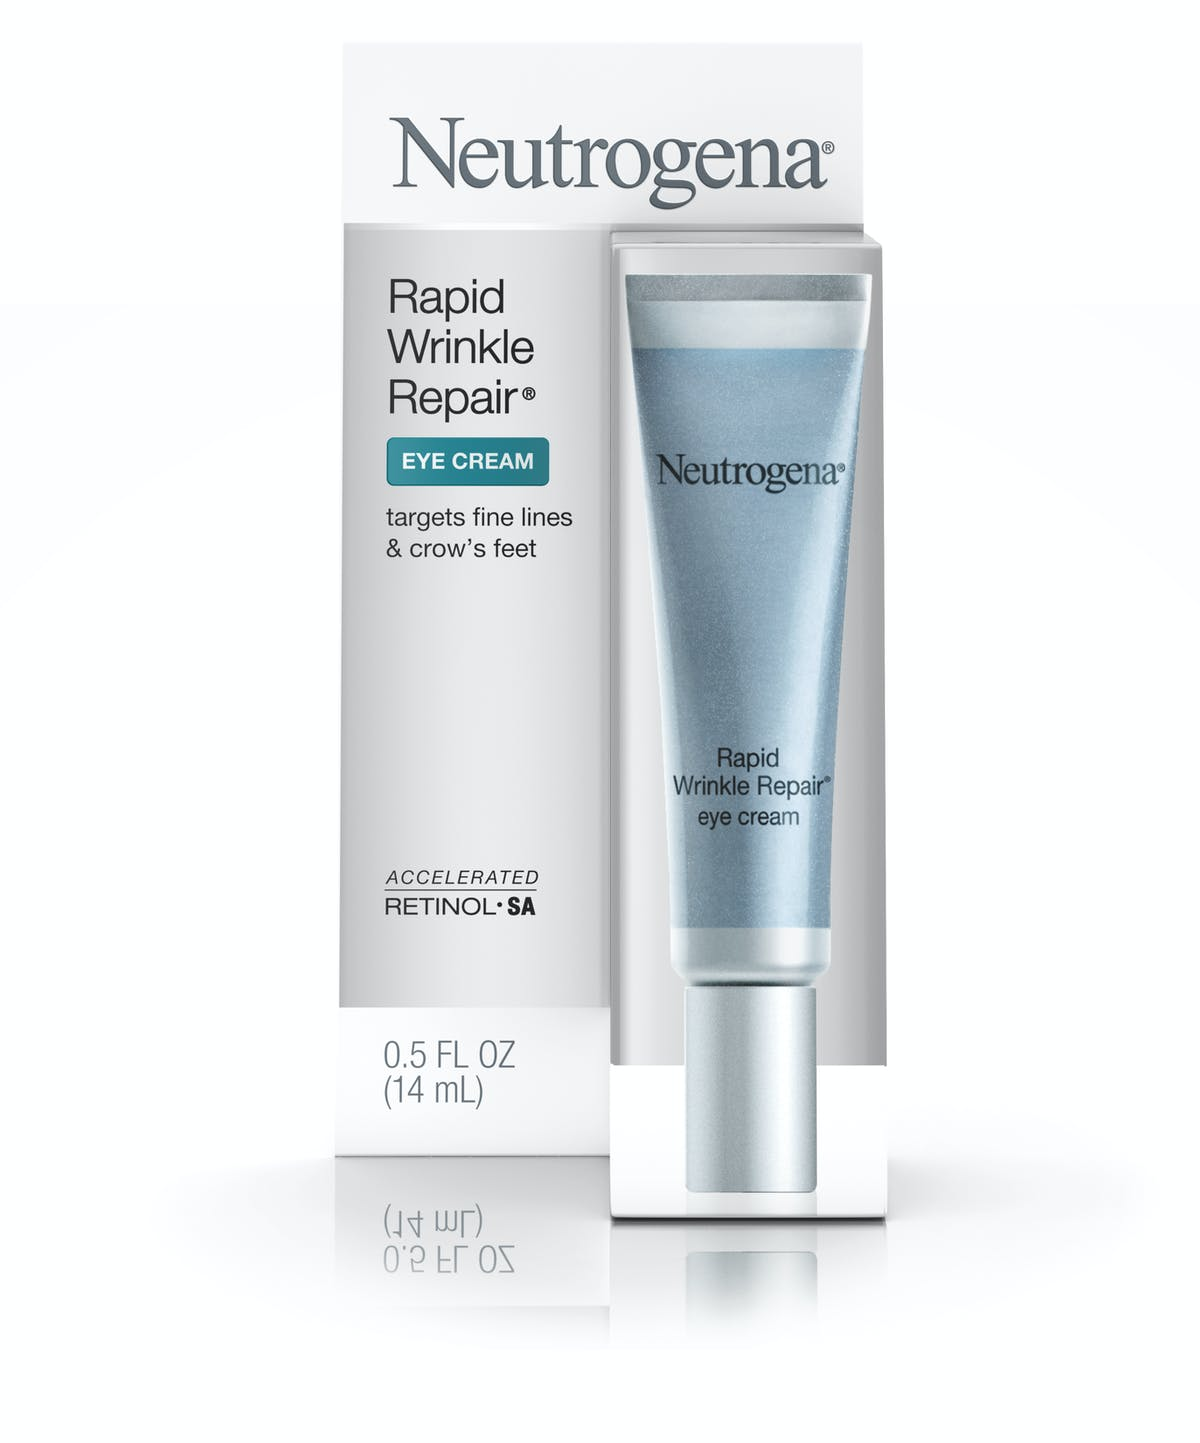 Rapid Wrinkle Repair Aging Eye Cream Neutrogena